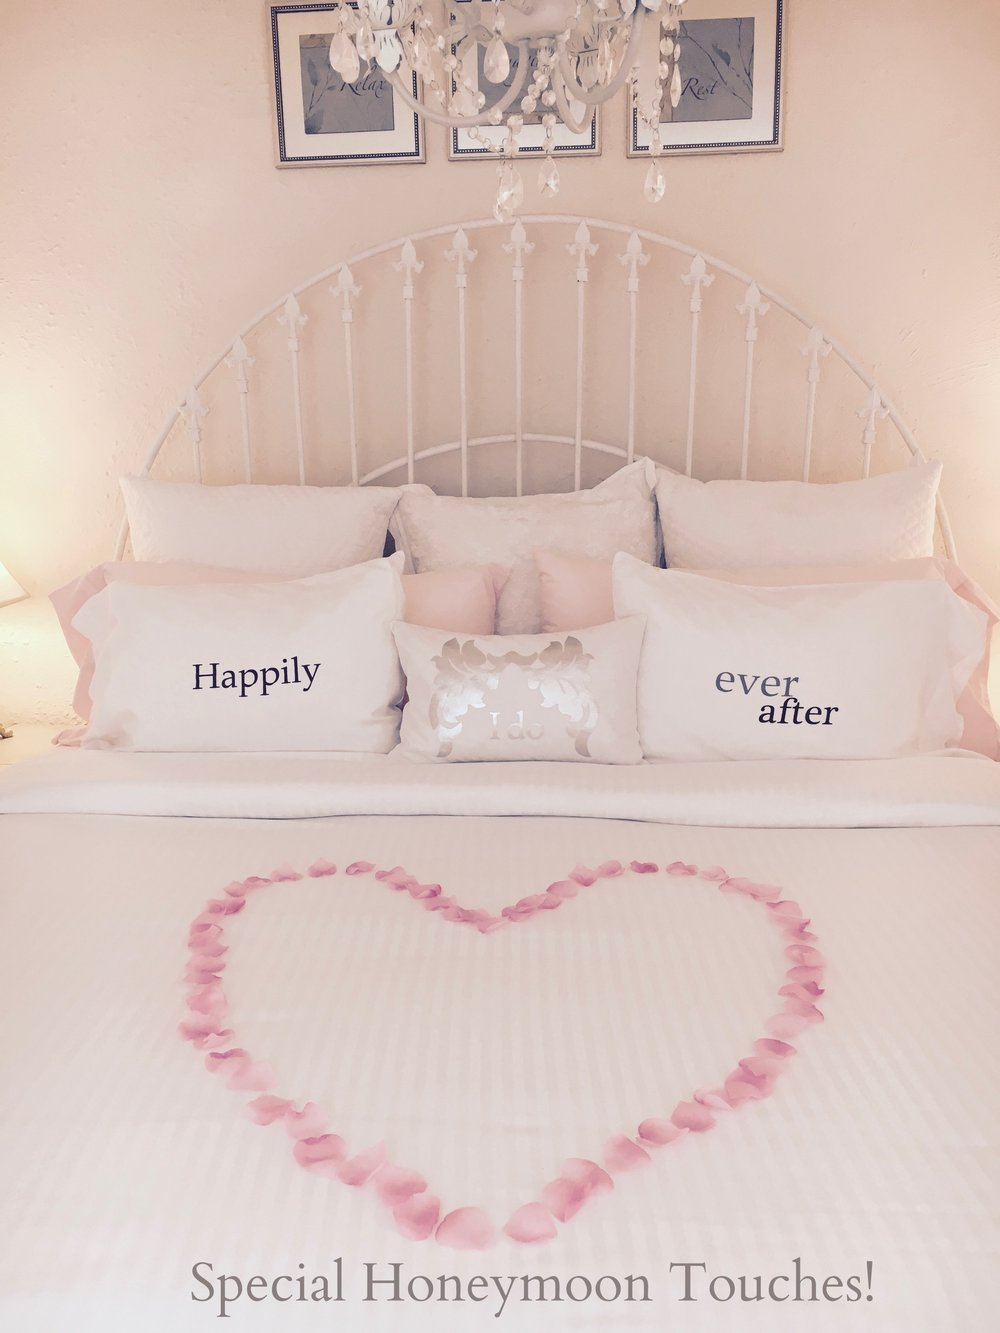 A perfect place for your honeymoon!!